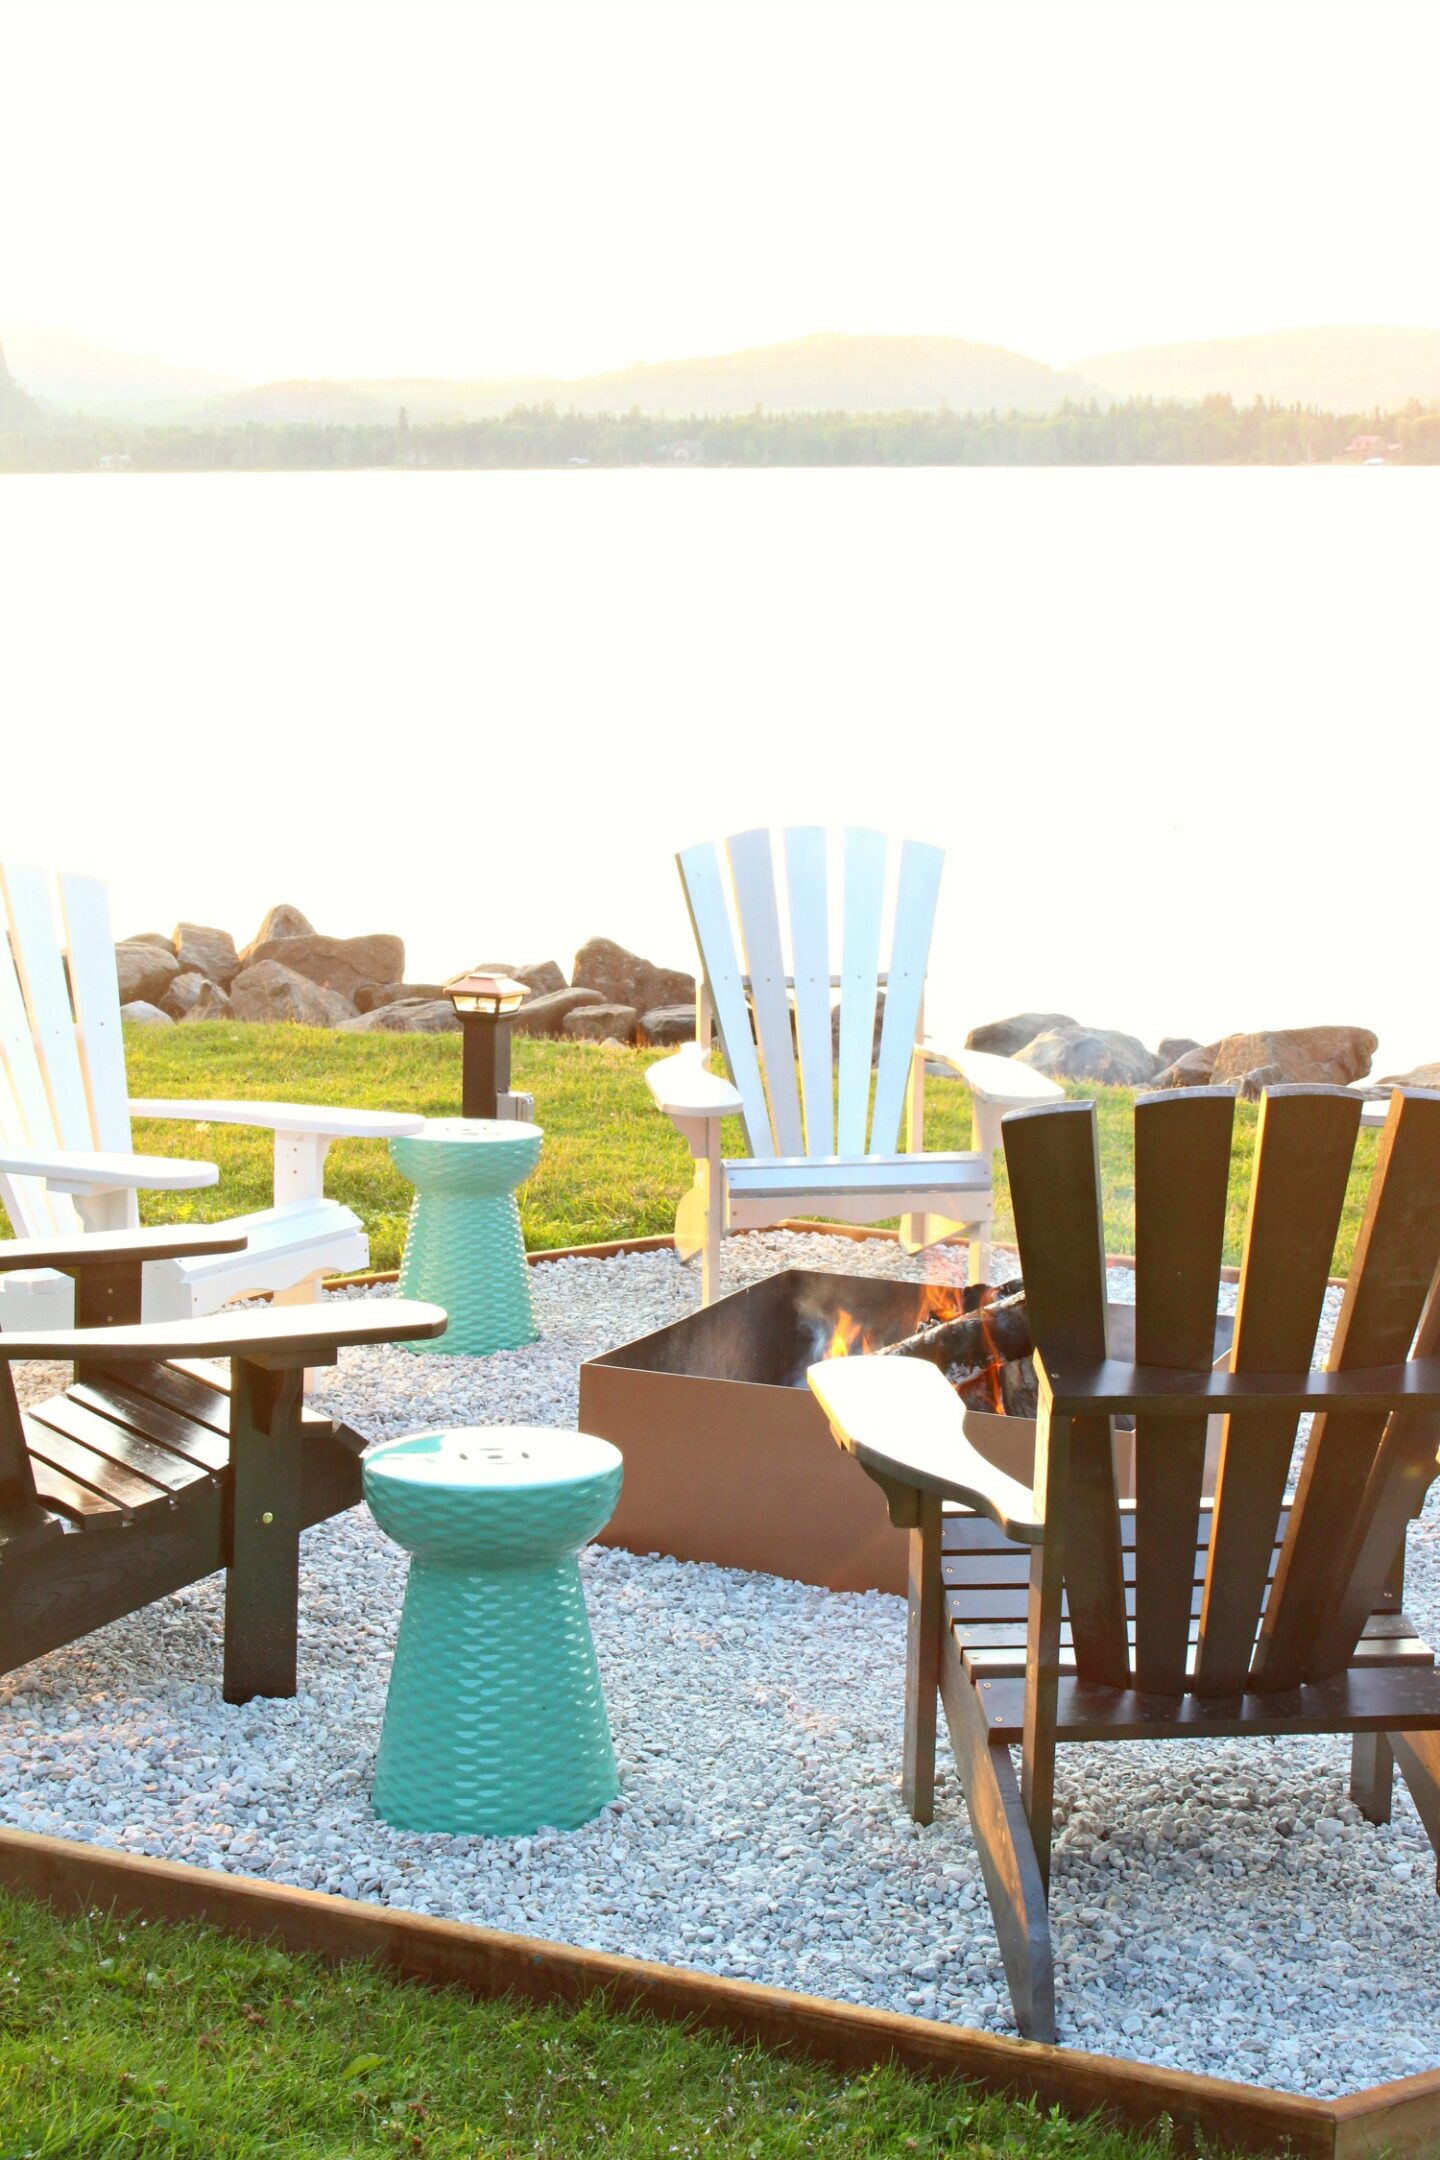 Hex Shaped Fire Pit Makeover + DIY Ombre Adirondack Chairs (Sponsored by The Home Depot Canada)